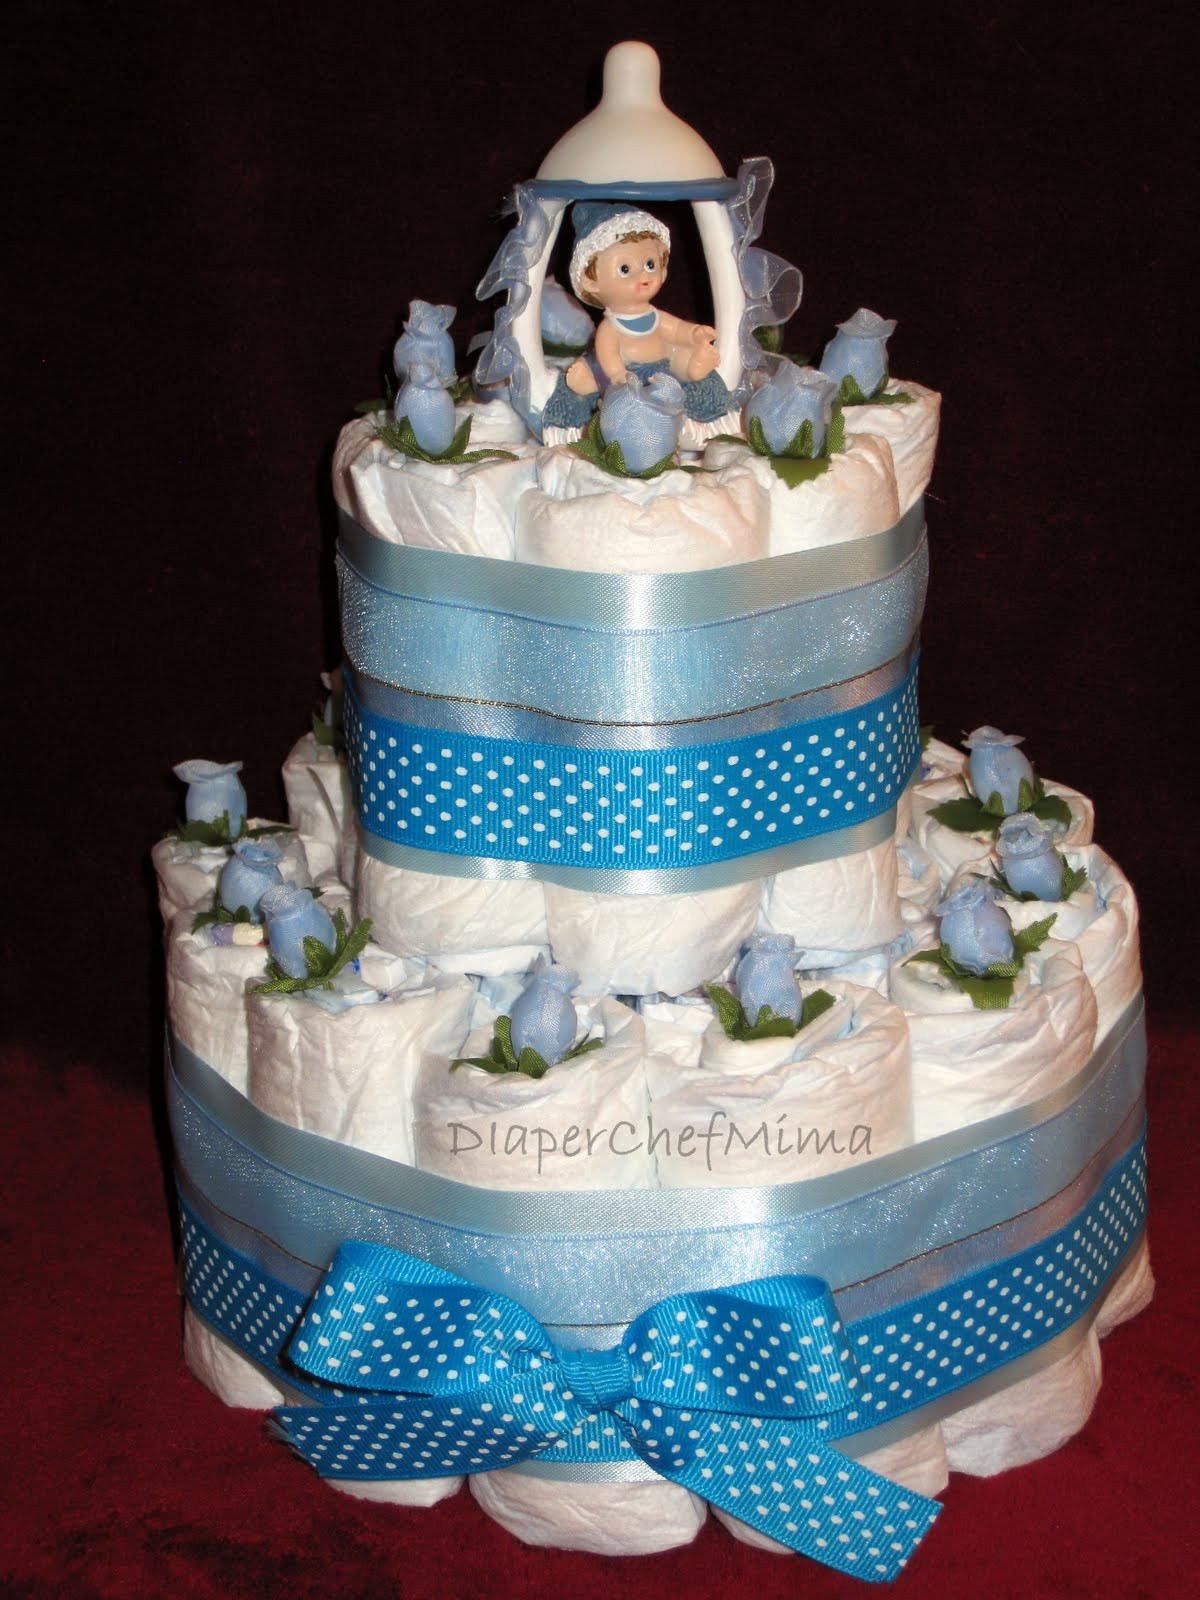 Diaper Cakes for Boys Beautiful Diaper Chef Mima Baby Shower Diaper Cake Centerpieces Of Brilliant 46 Photos Diaper Cakes for Boys